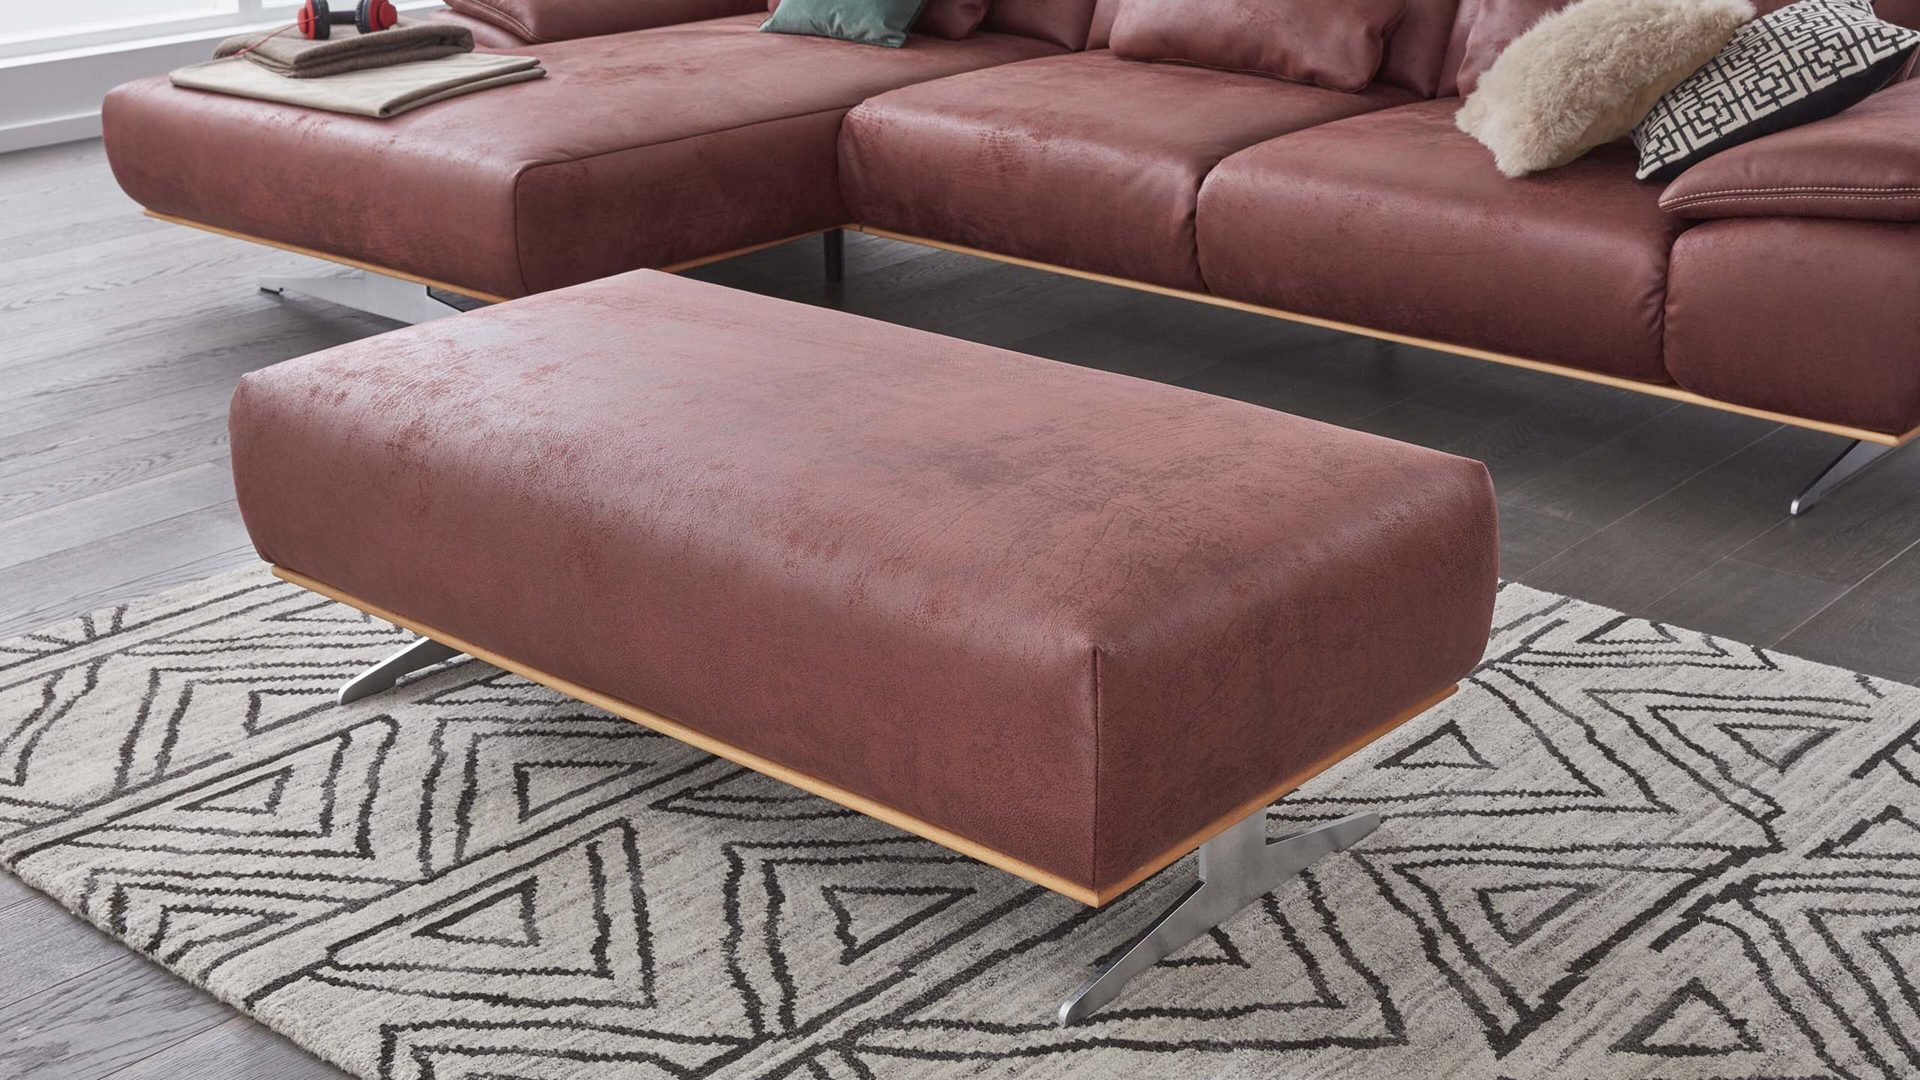 Polsterhocker Interliving aus Stoff in Rot Interliving Sofa Serie 4300 – XXL-Hocker rote Mikrofaser Mustang wine – ca. 135 x 70 cm